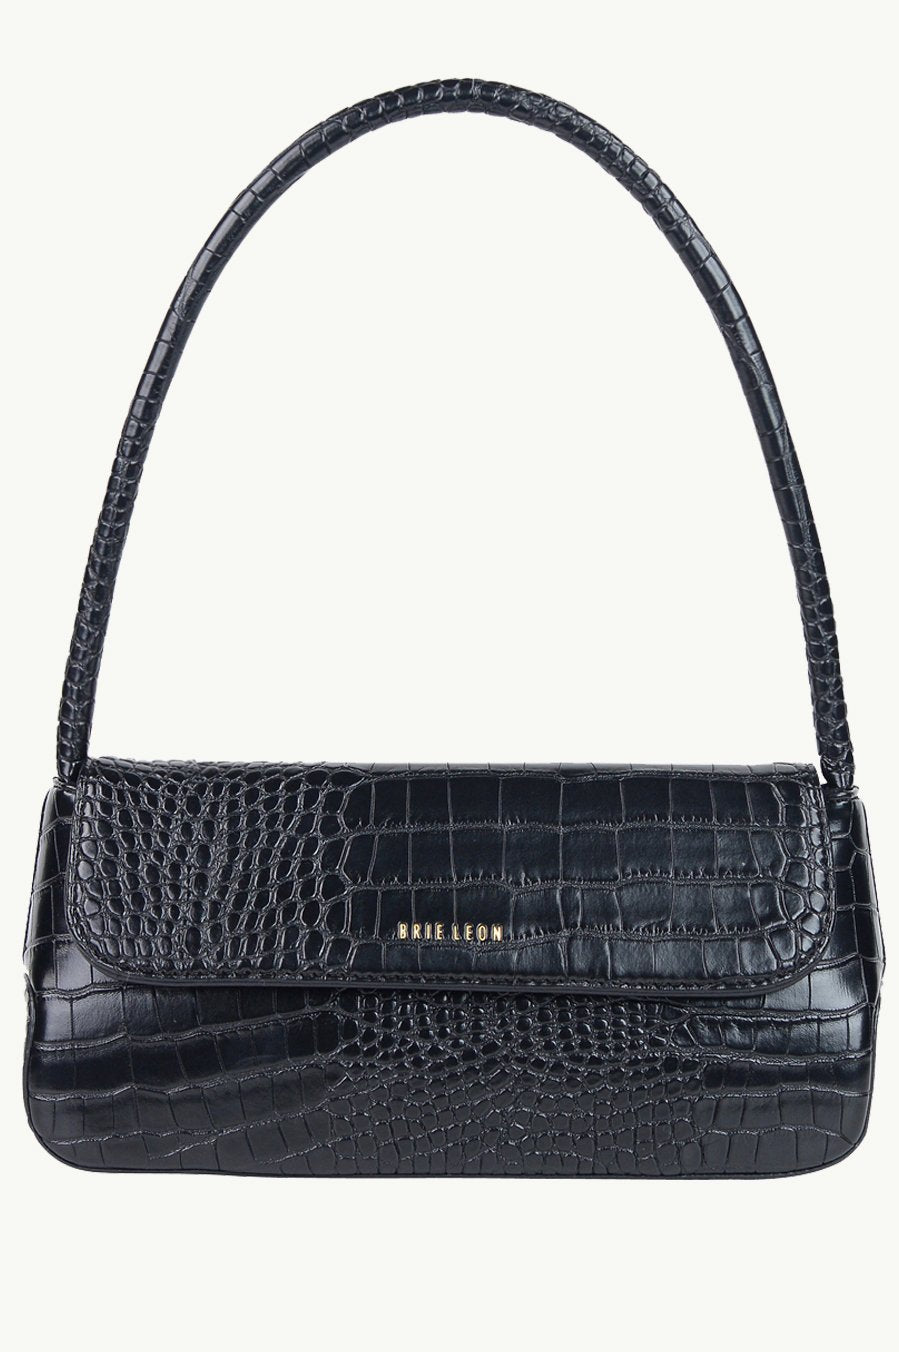 THE CAMILLE BAG ( Black Matte Croc)